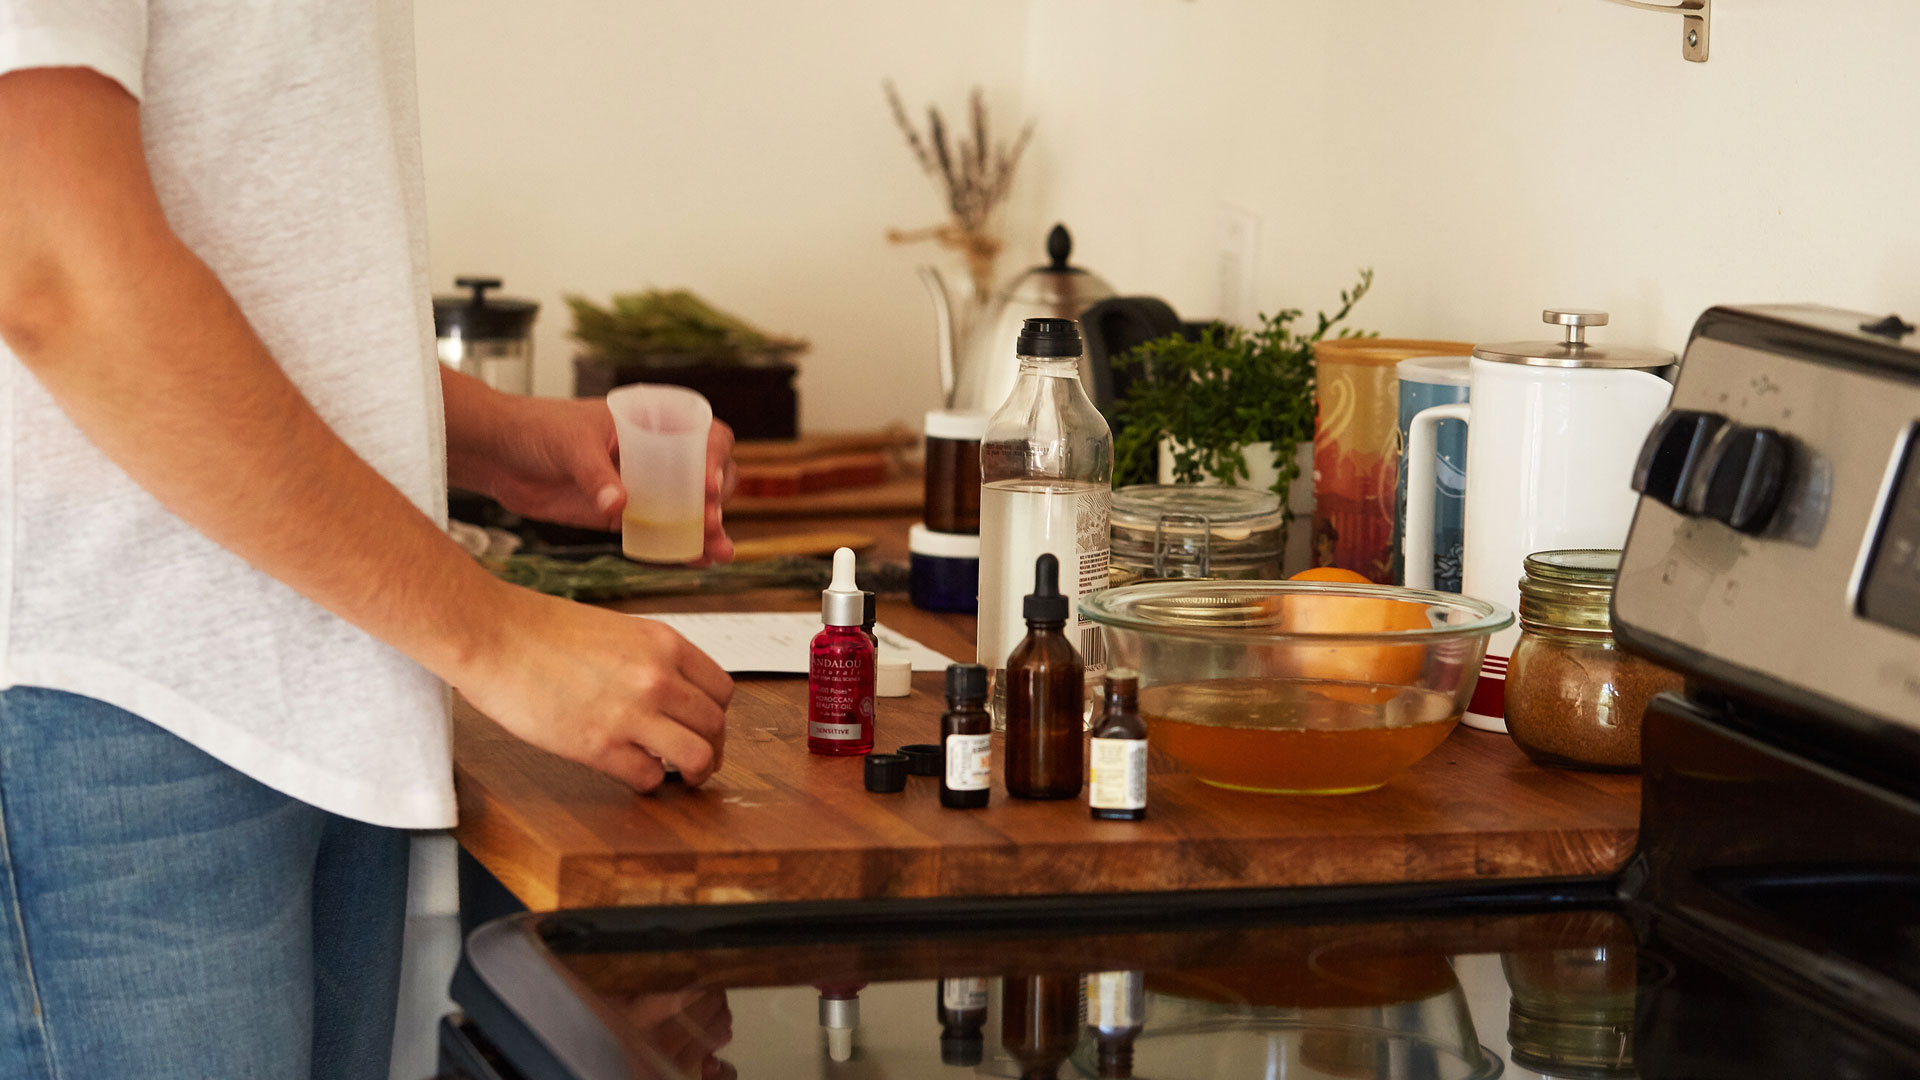 Getting ingredients ready for Caroline Wachsmuth's Heart Oil recipe